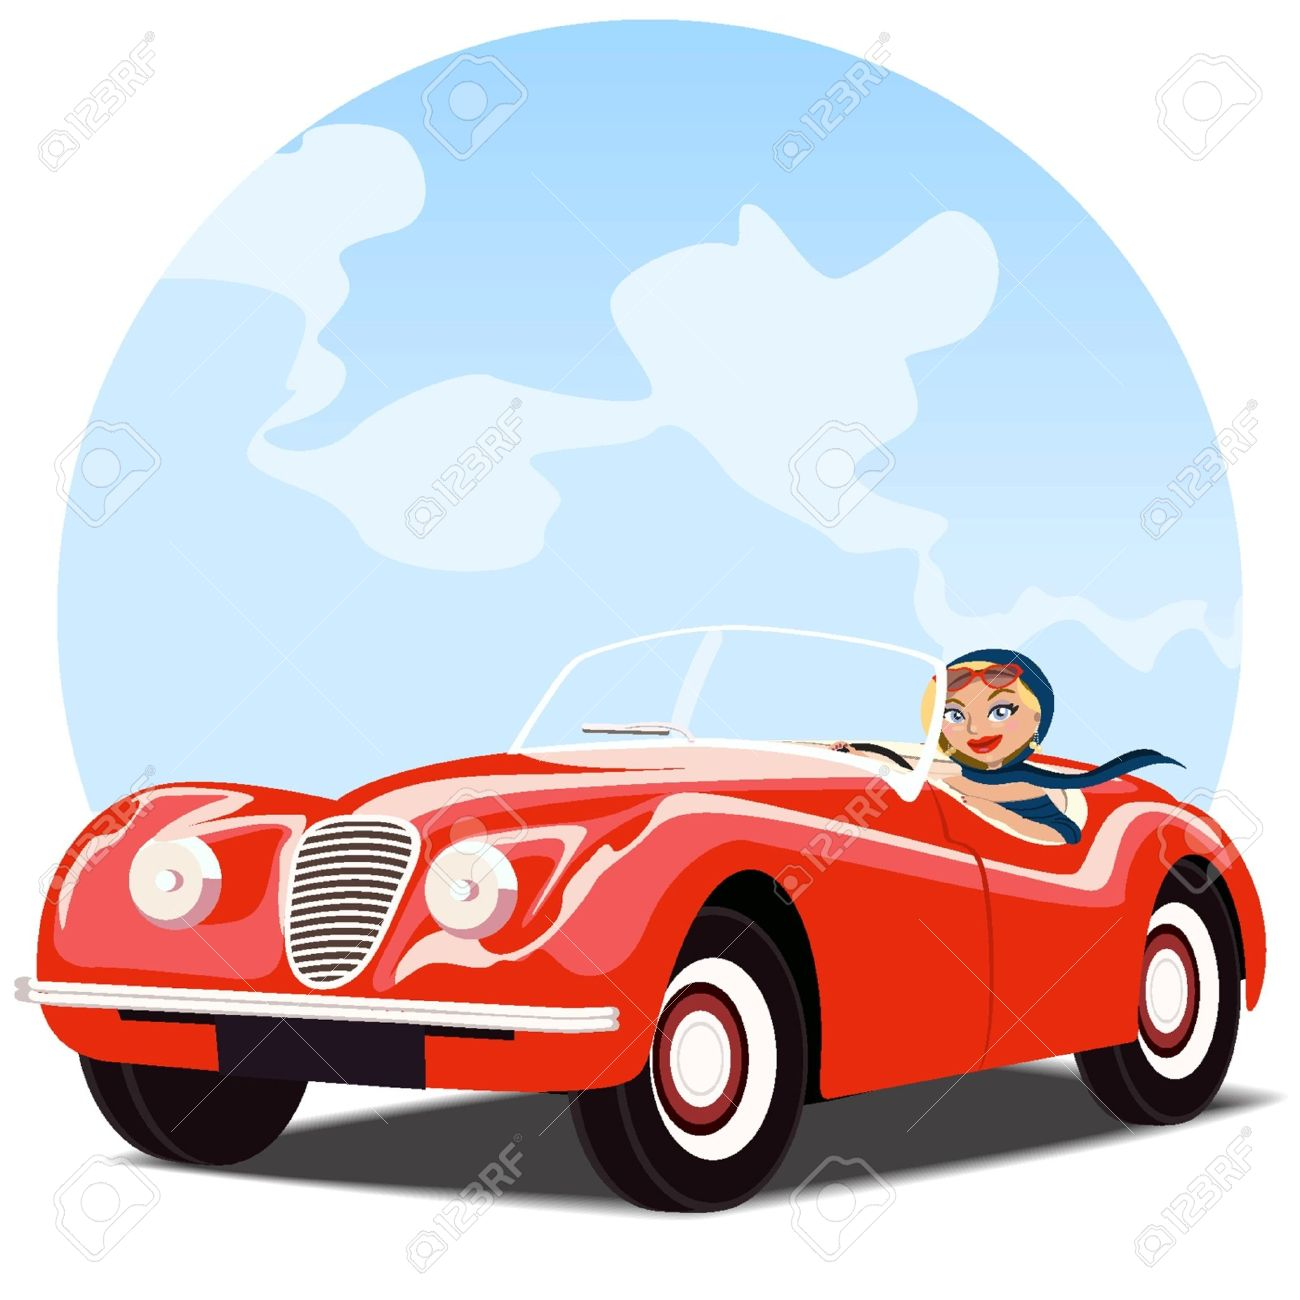 Girl In Old Red Convertible Car Royalty Free Cliparts, Vectors ...